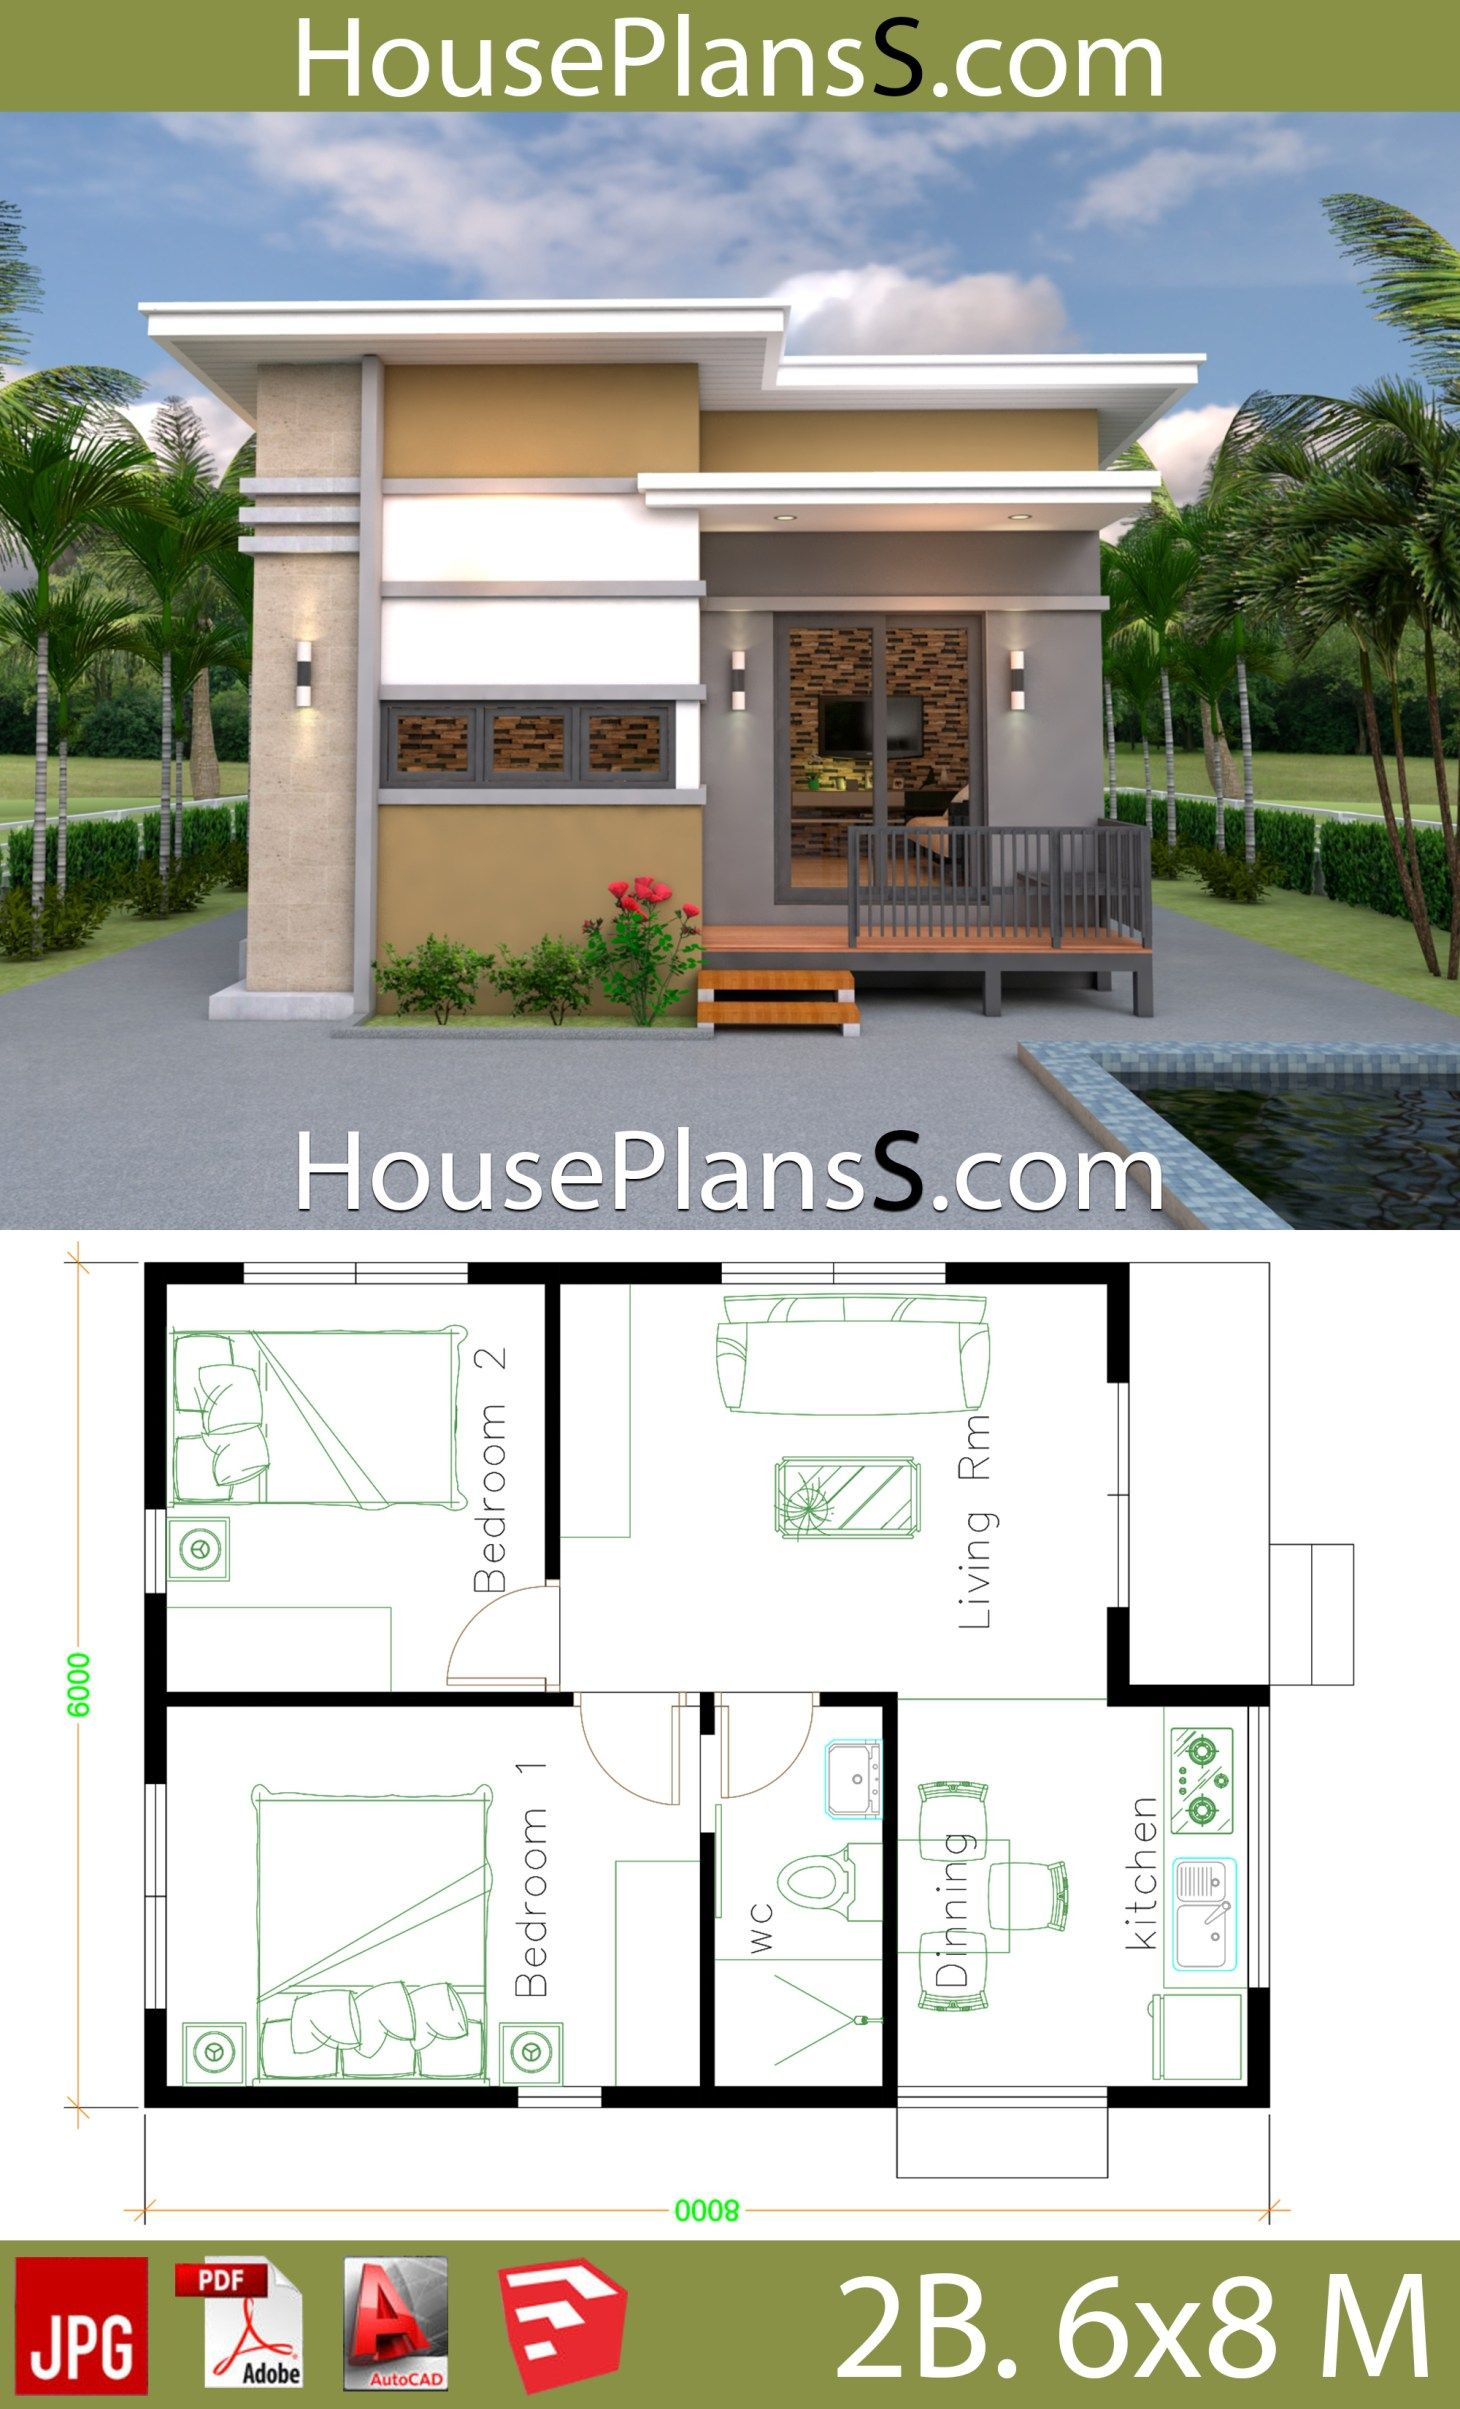 Small House Design Photos Fresh Small House Design Plans 6x8 with 2 Bedrooms